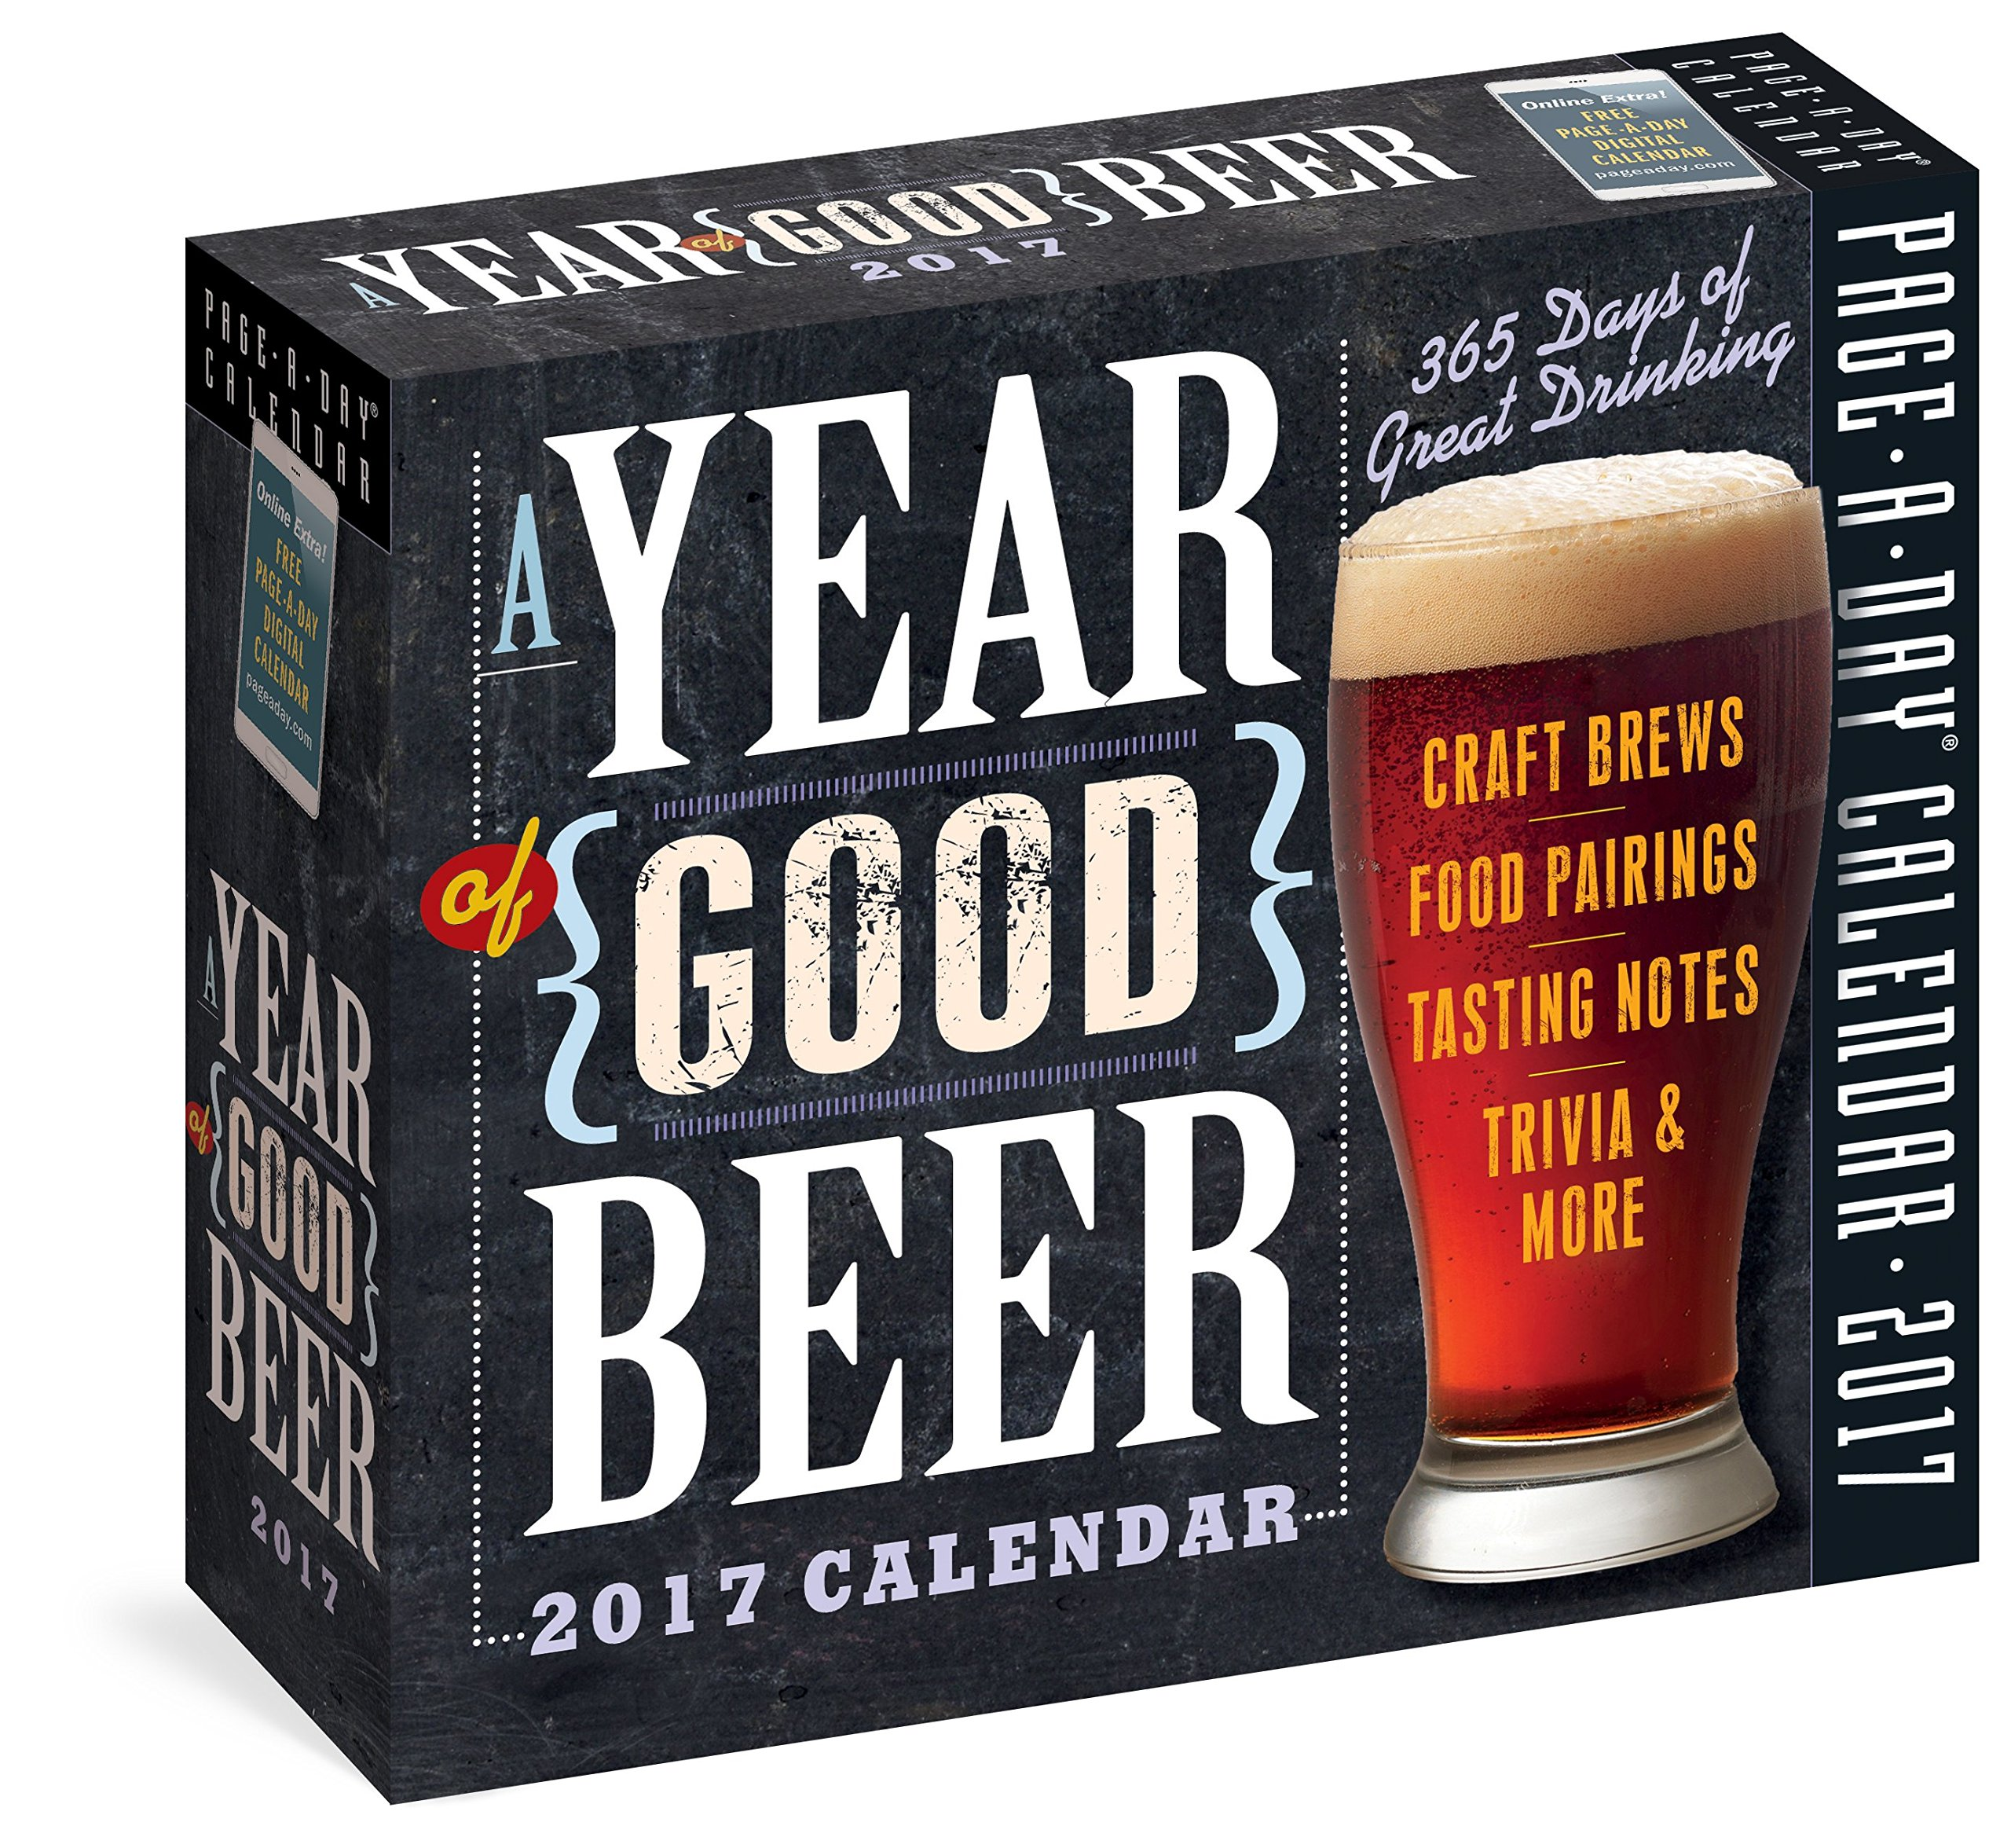 A Year of Good Beer Page-A-Day Calendar 2017 Calendar – Day to Day Calendar, August 23, 2016 Workman Publishing Workman Publishing Company 0761188142 Beverages - Beer